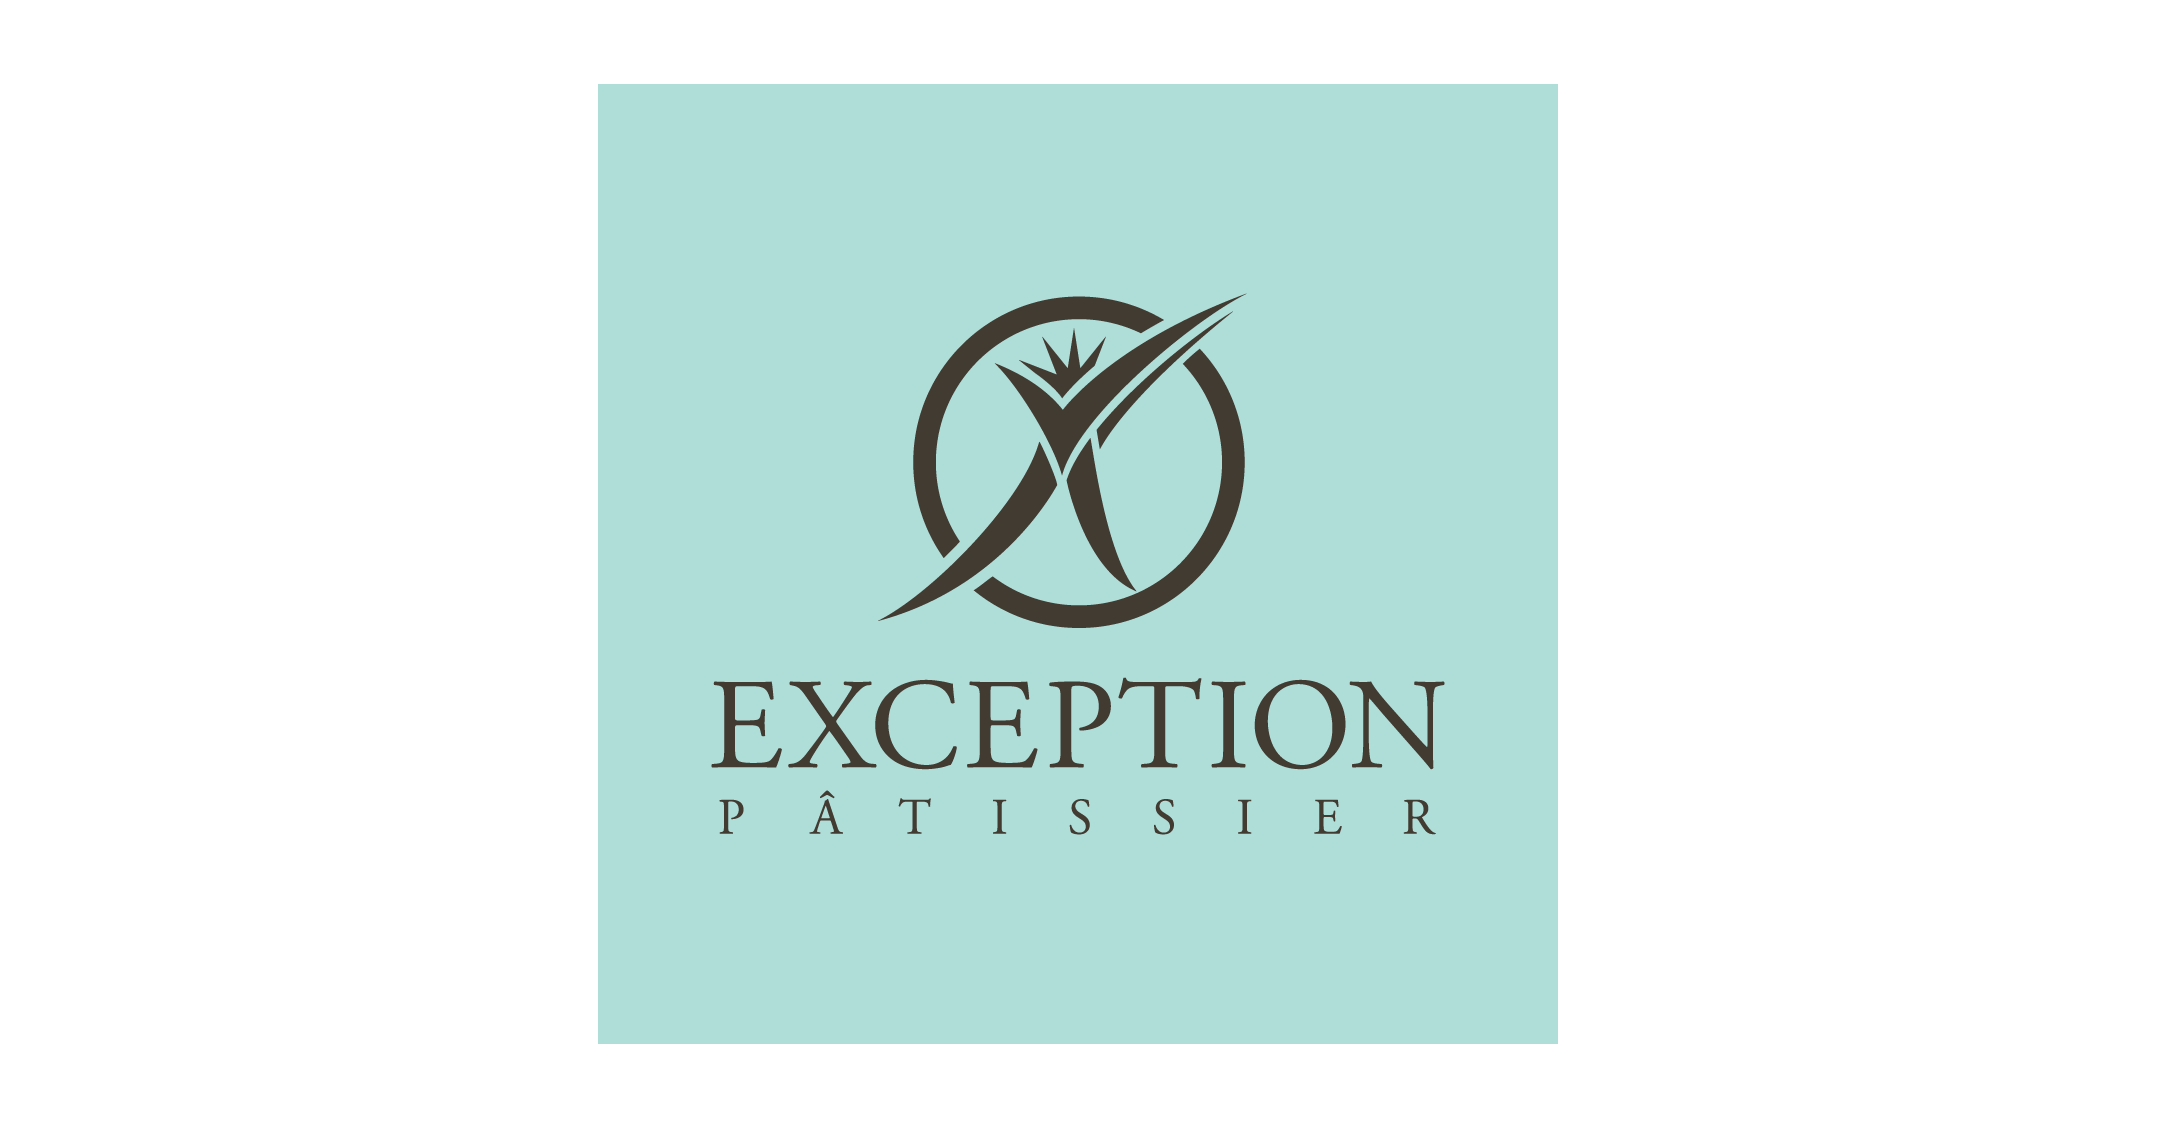 صورة Job: Human Resources Section Head at Exception patissiere in Giza, Egypt